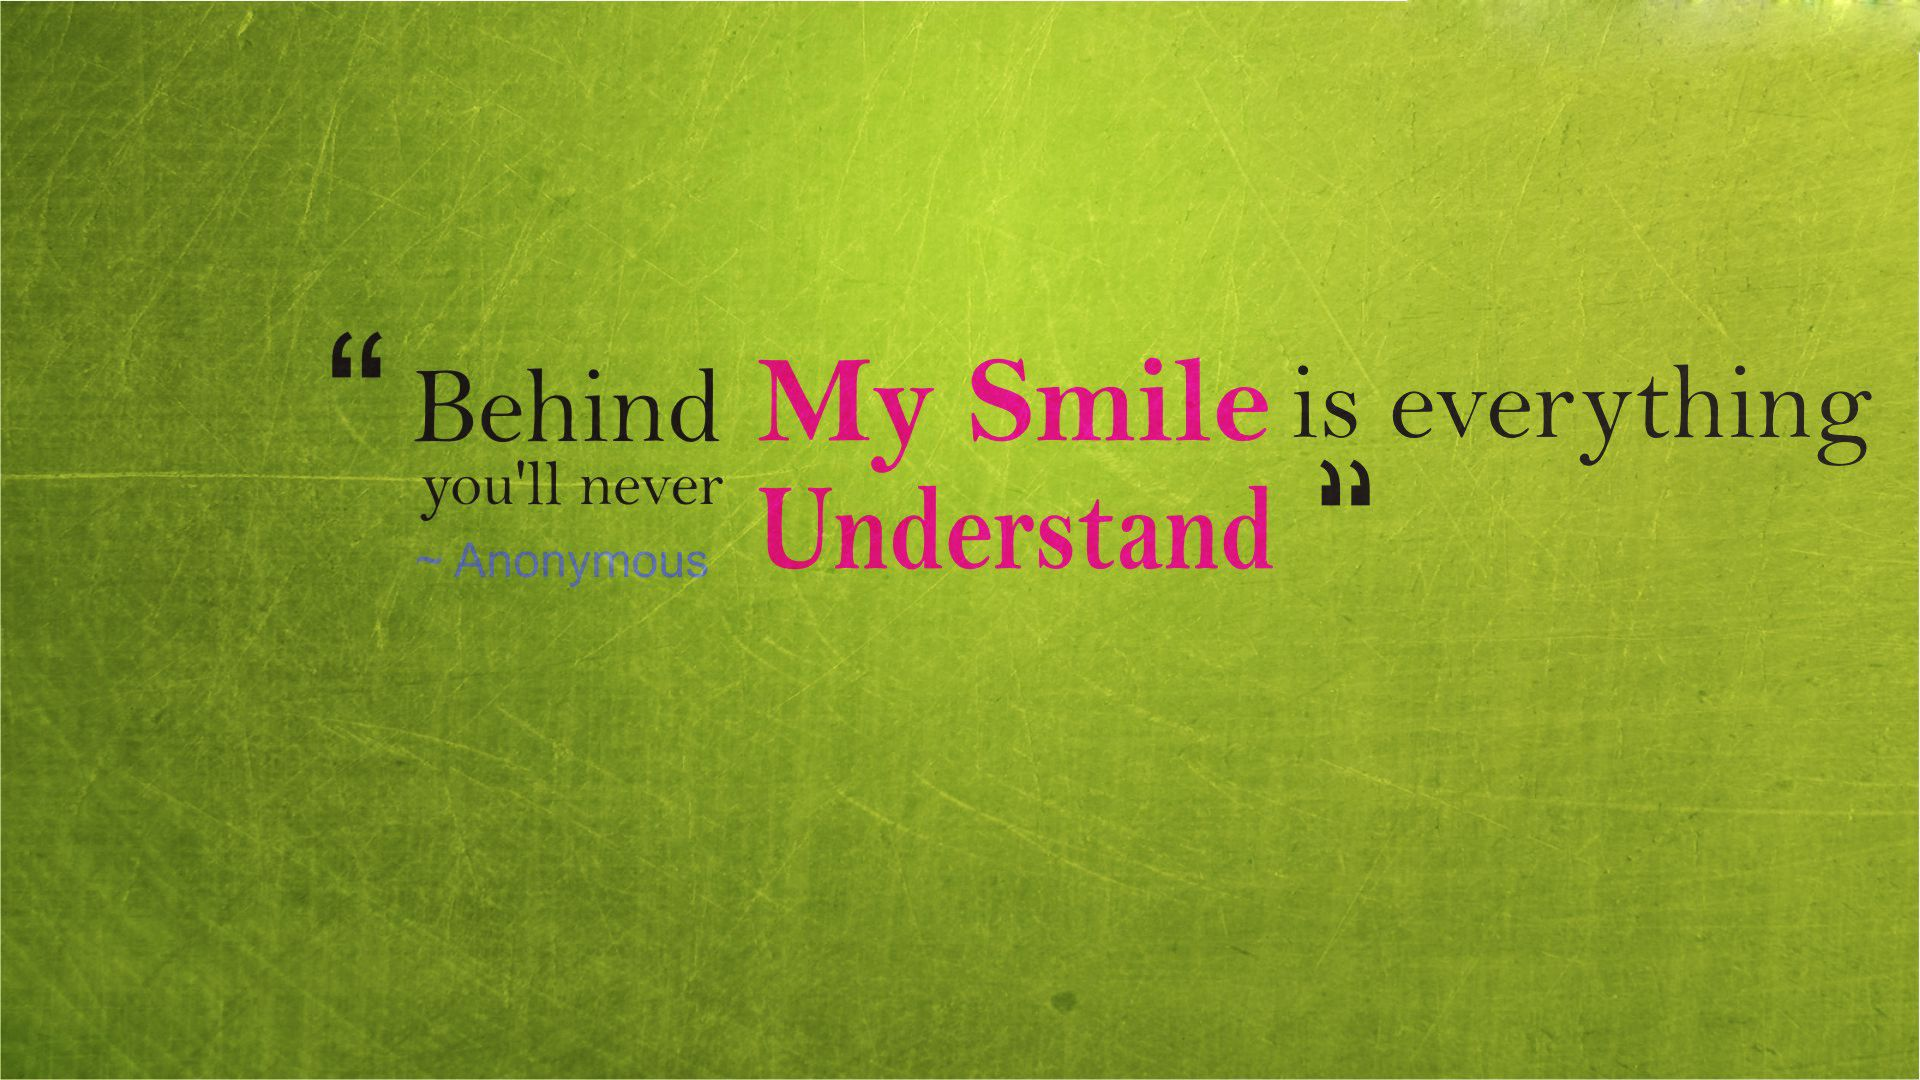 My Smile Quotes Motivation HD background free for whatsapp